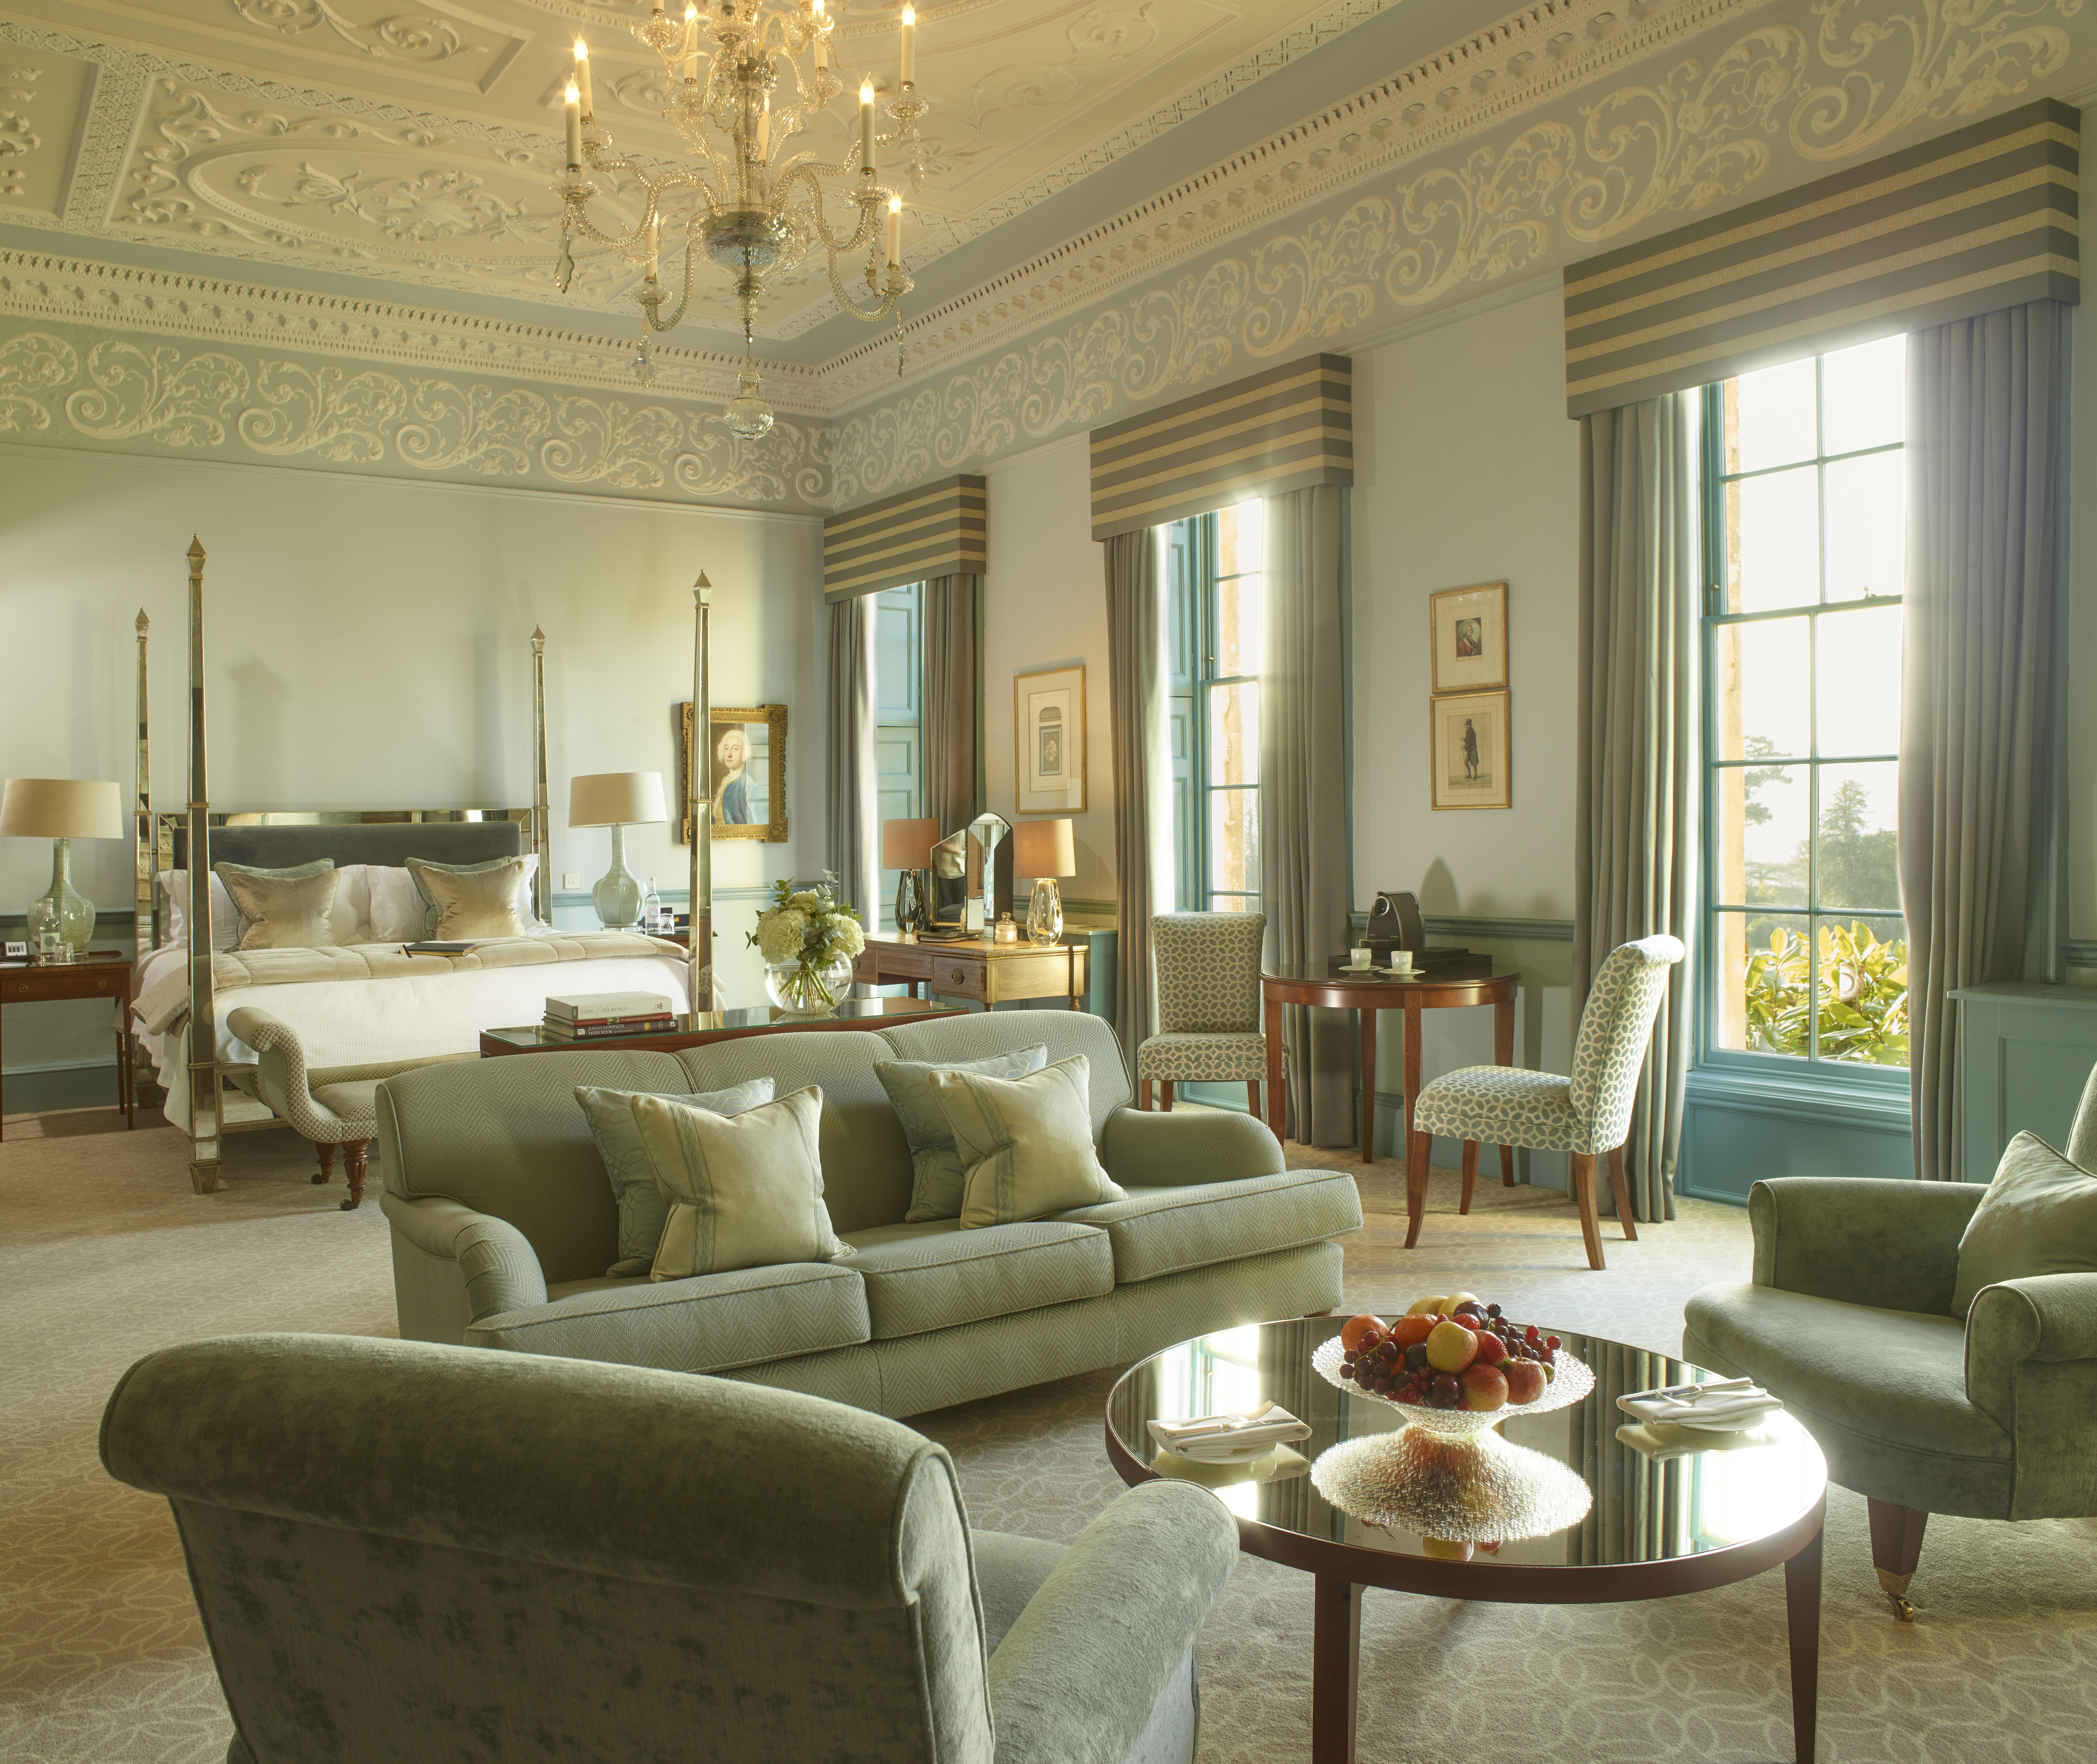 Royal Crescent - Master Suite - The Duke of York Suite